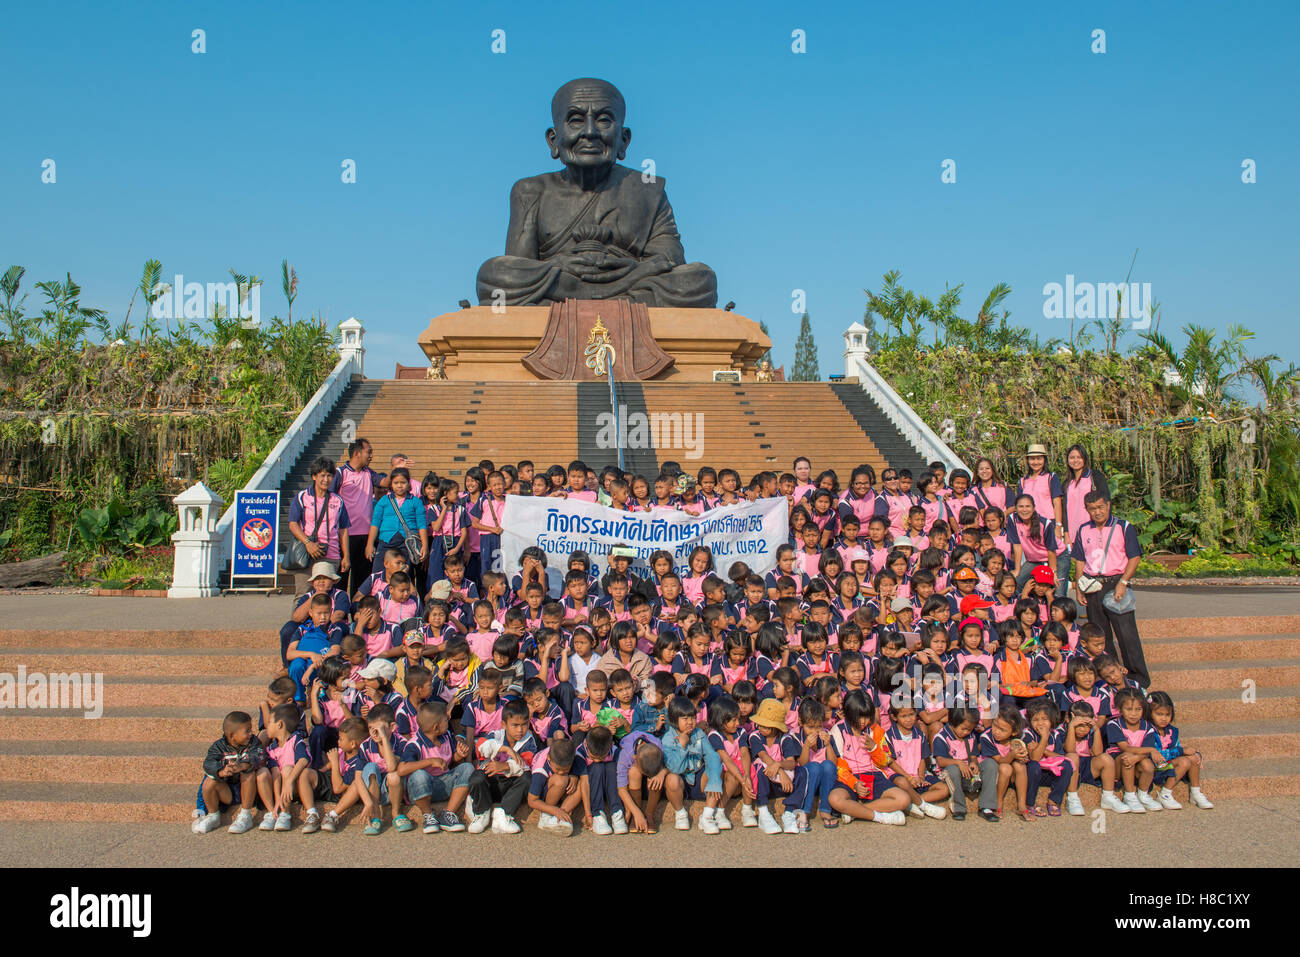 Thai school children having a group photo in front of the iconic sculpture of revered Buddhist monk Luang Pu Thuat - Stock Image